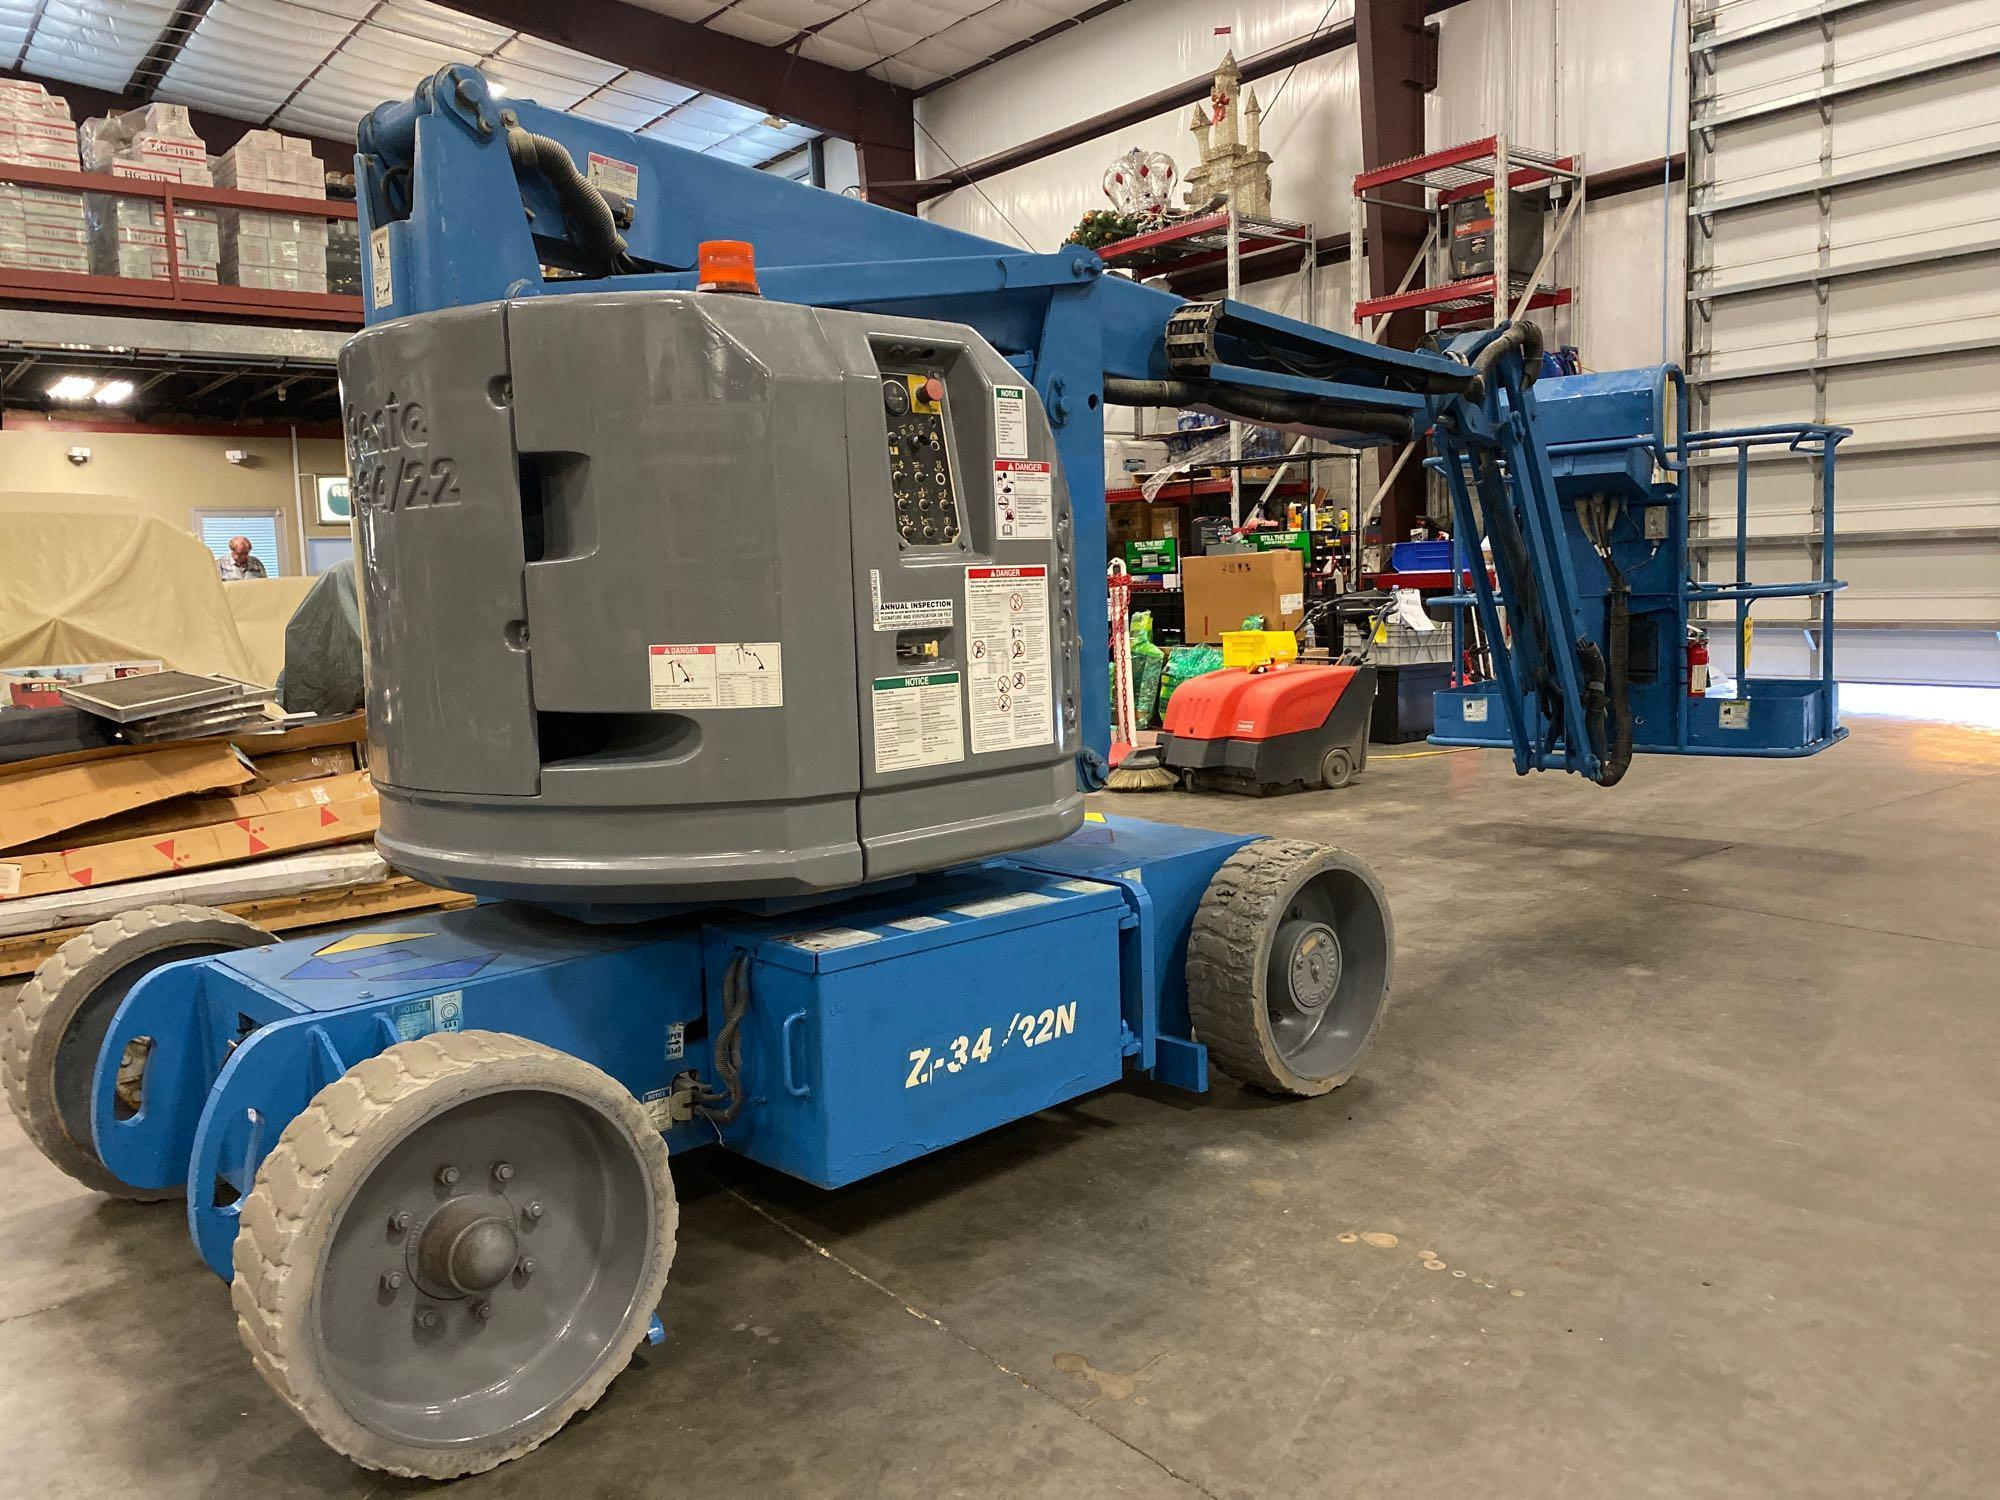 Lot 72 - GENIE Z-30/20N ELECTRIC ARTICULATING BOOM LIFT, 30' PLATFORM HEIGHT, BUILT IN BATTERY CHARGER, RUNS